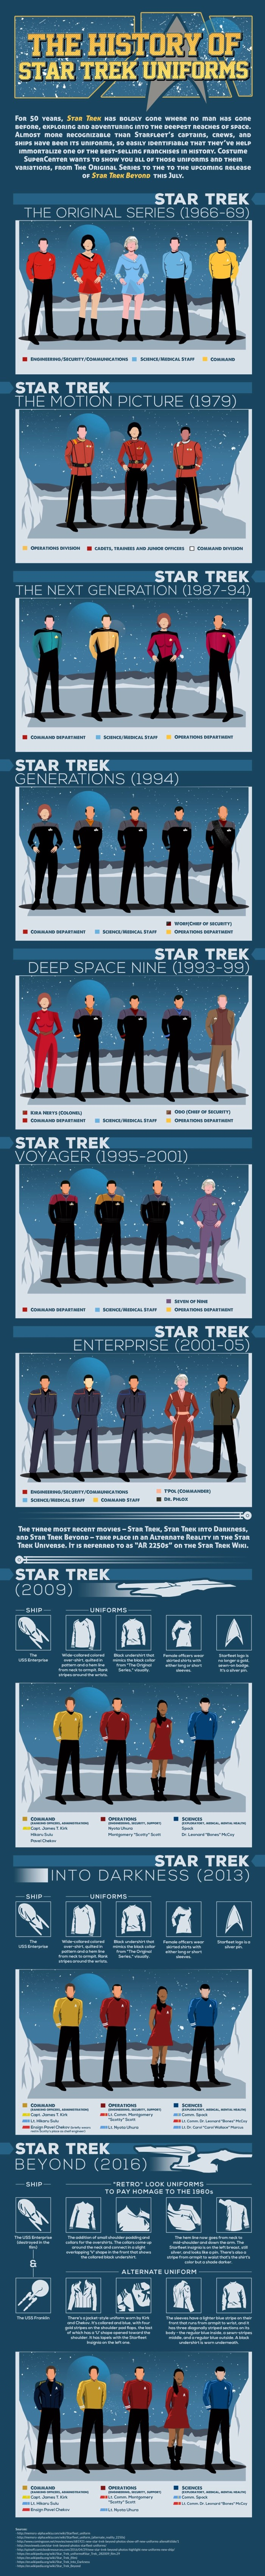 Star Trek Uniform Guide